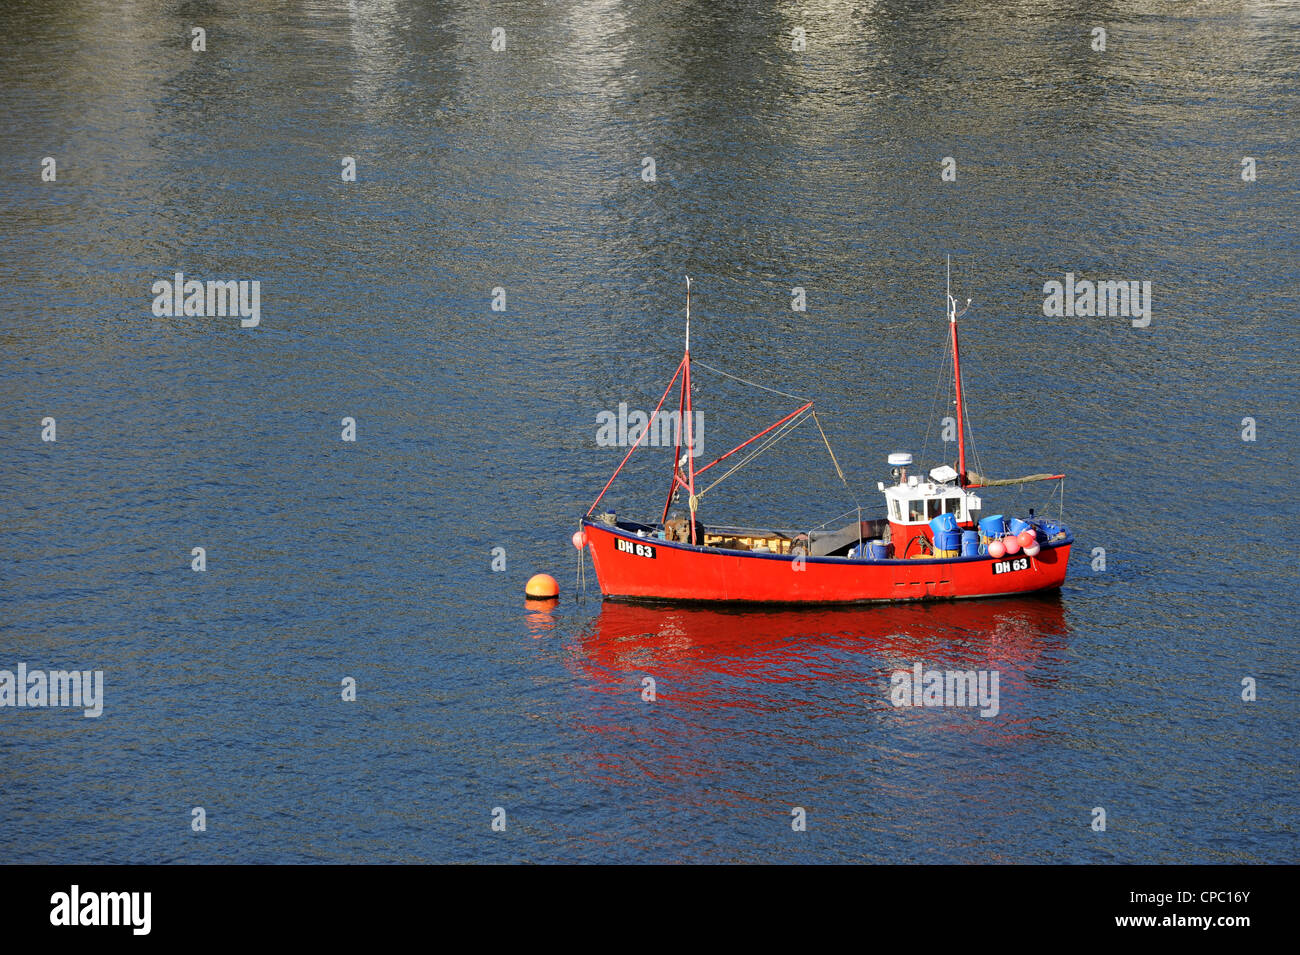 Red fishing boat moored on River Dart in Dartmouth - Stock Image